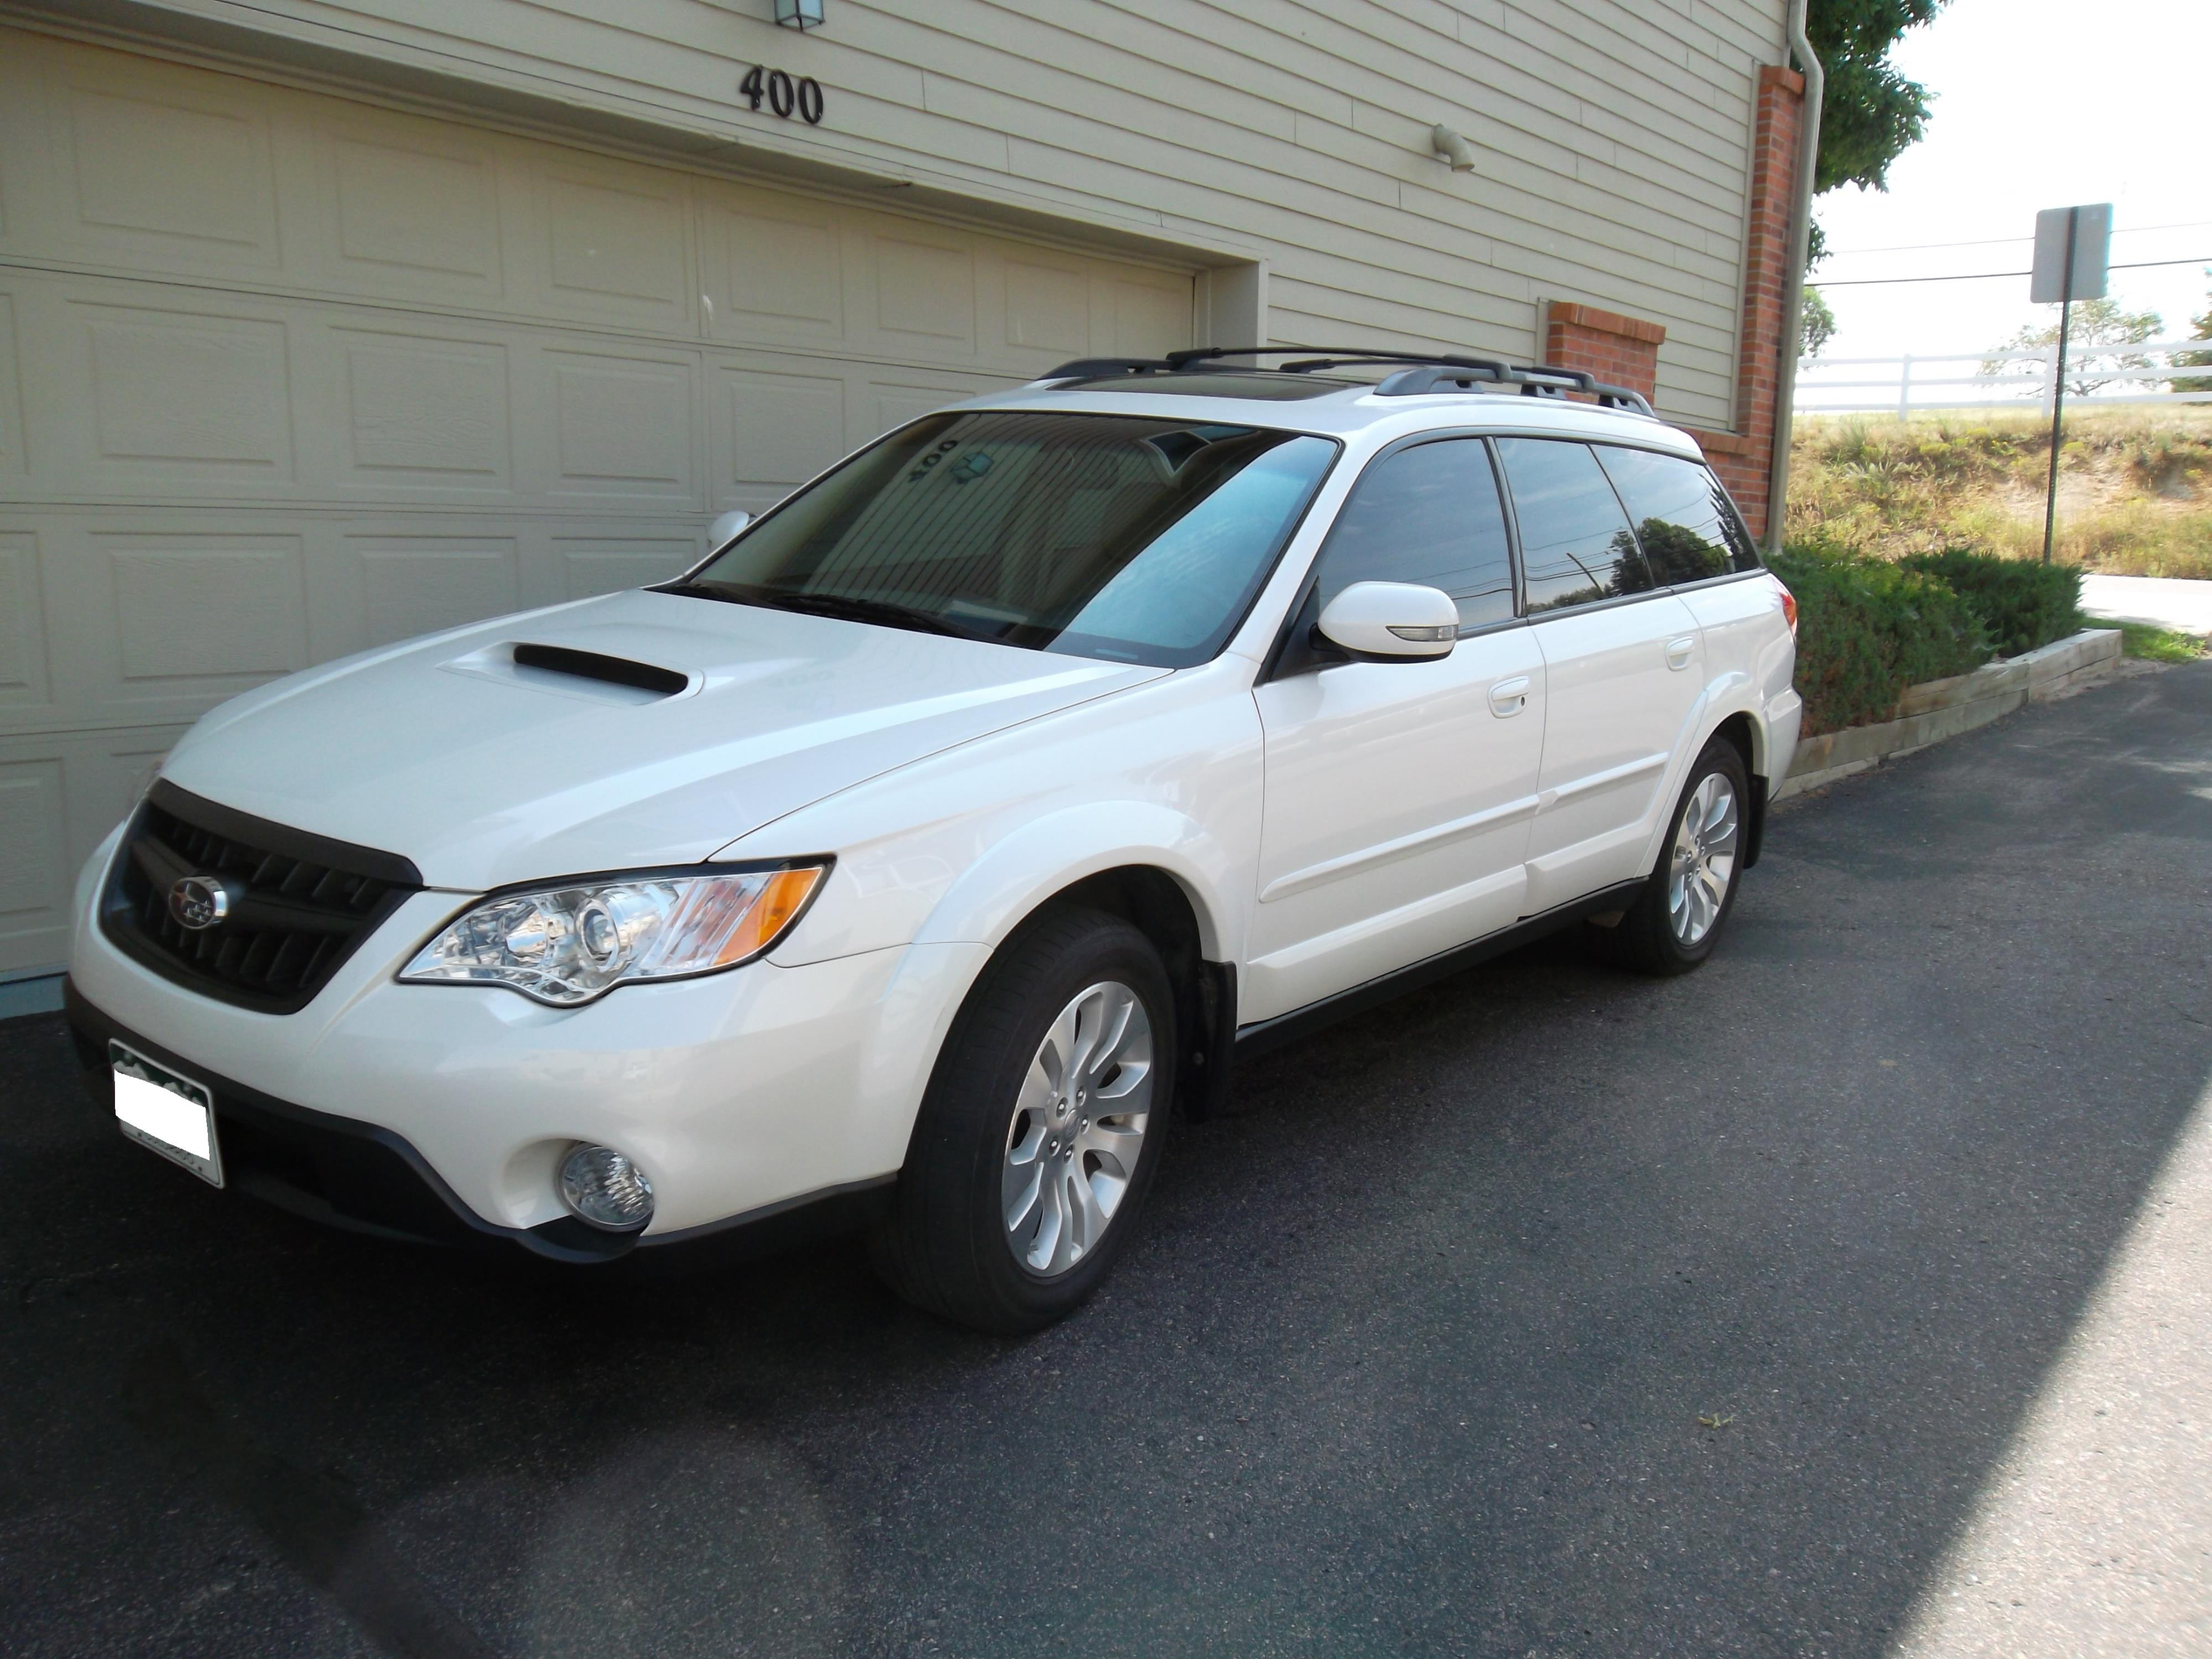 3 Cars In A 2 Car Garage Rx7club Com Jan 2013 211 Jpg: 2008 Outback XT Limited For Sale, 21,000 Miles